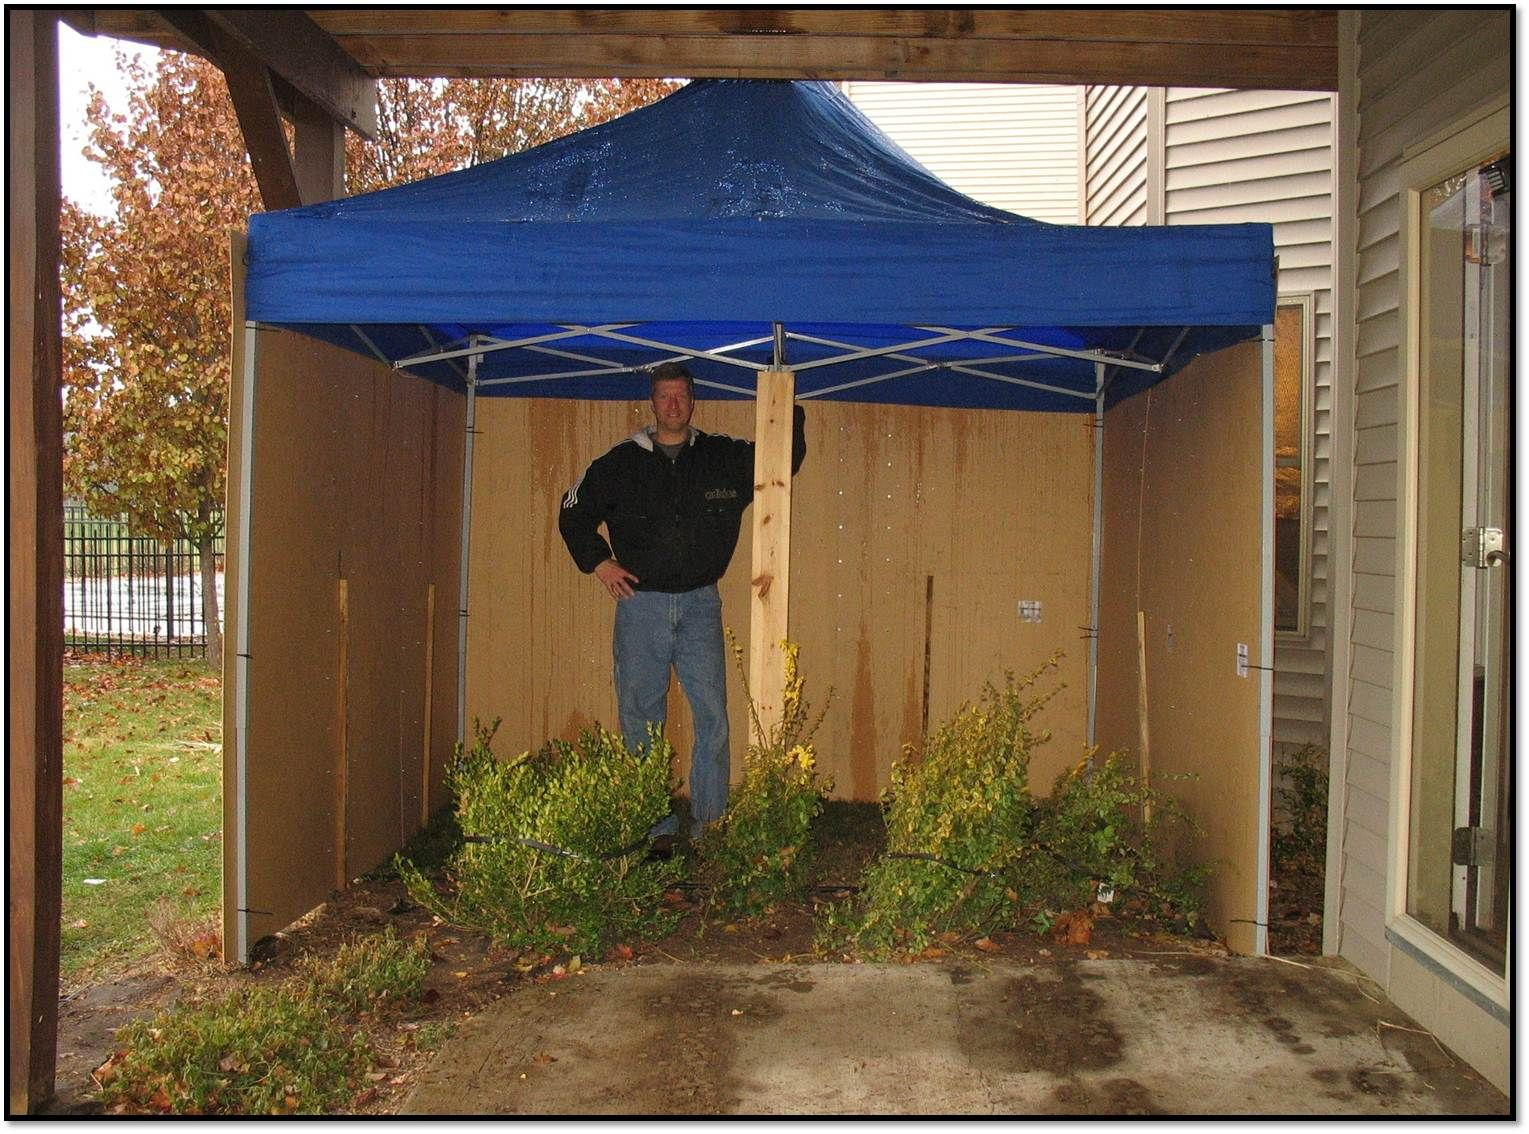 Covered Potty Area For Wind Rain And Snow Outdoor Dog Area Dog Potty Area Dog Tent